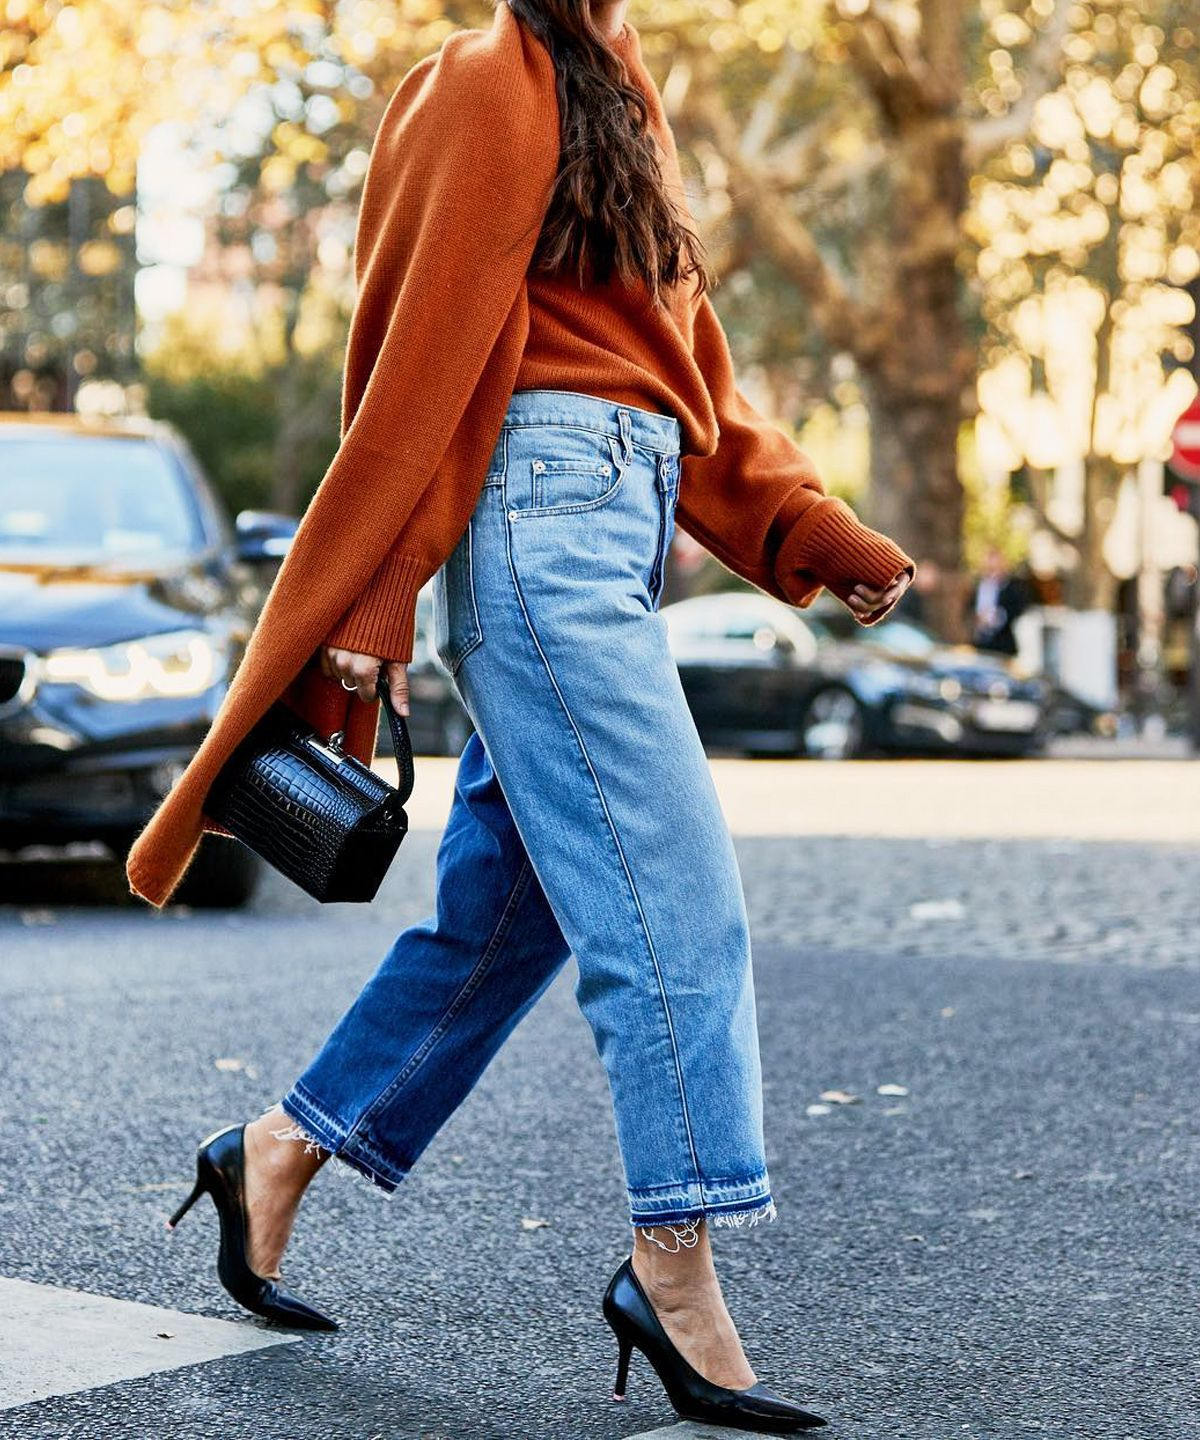 6 Affordable Accessories That Make Me Look Like a Rich Girl